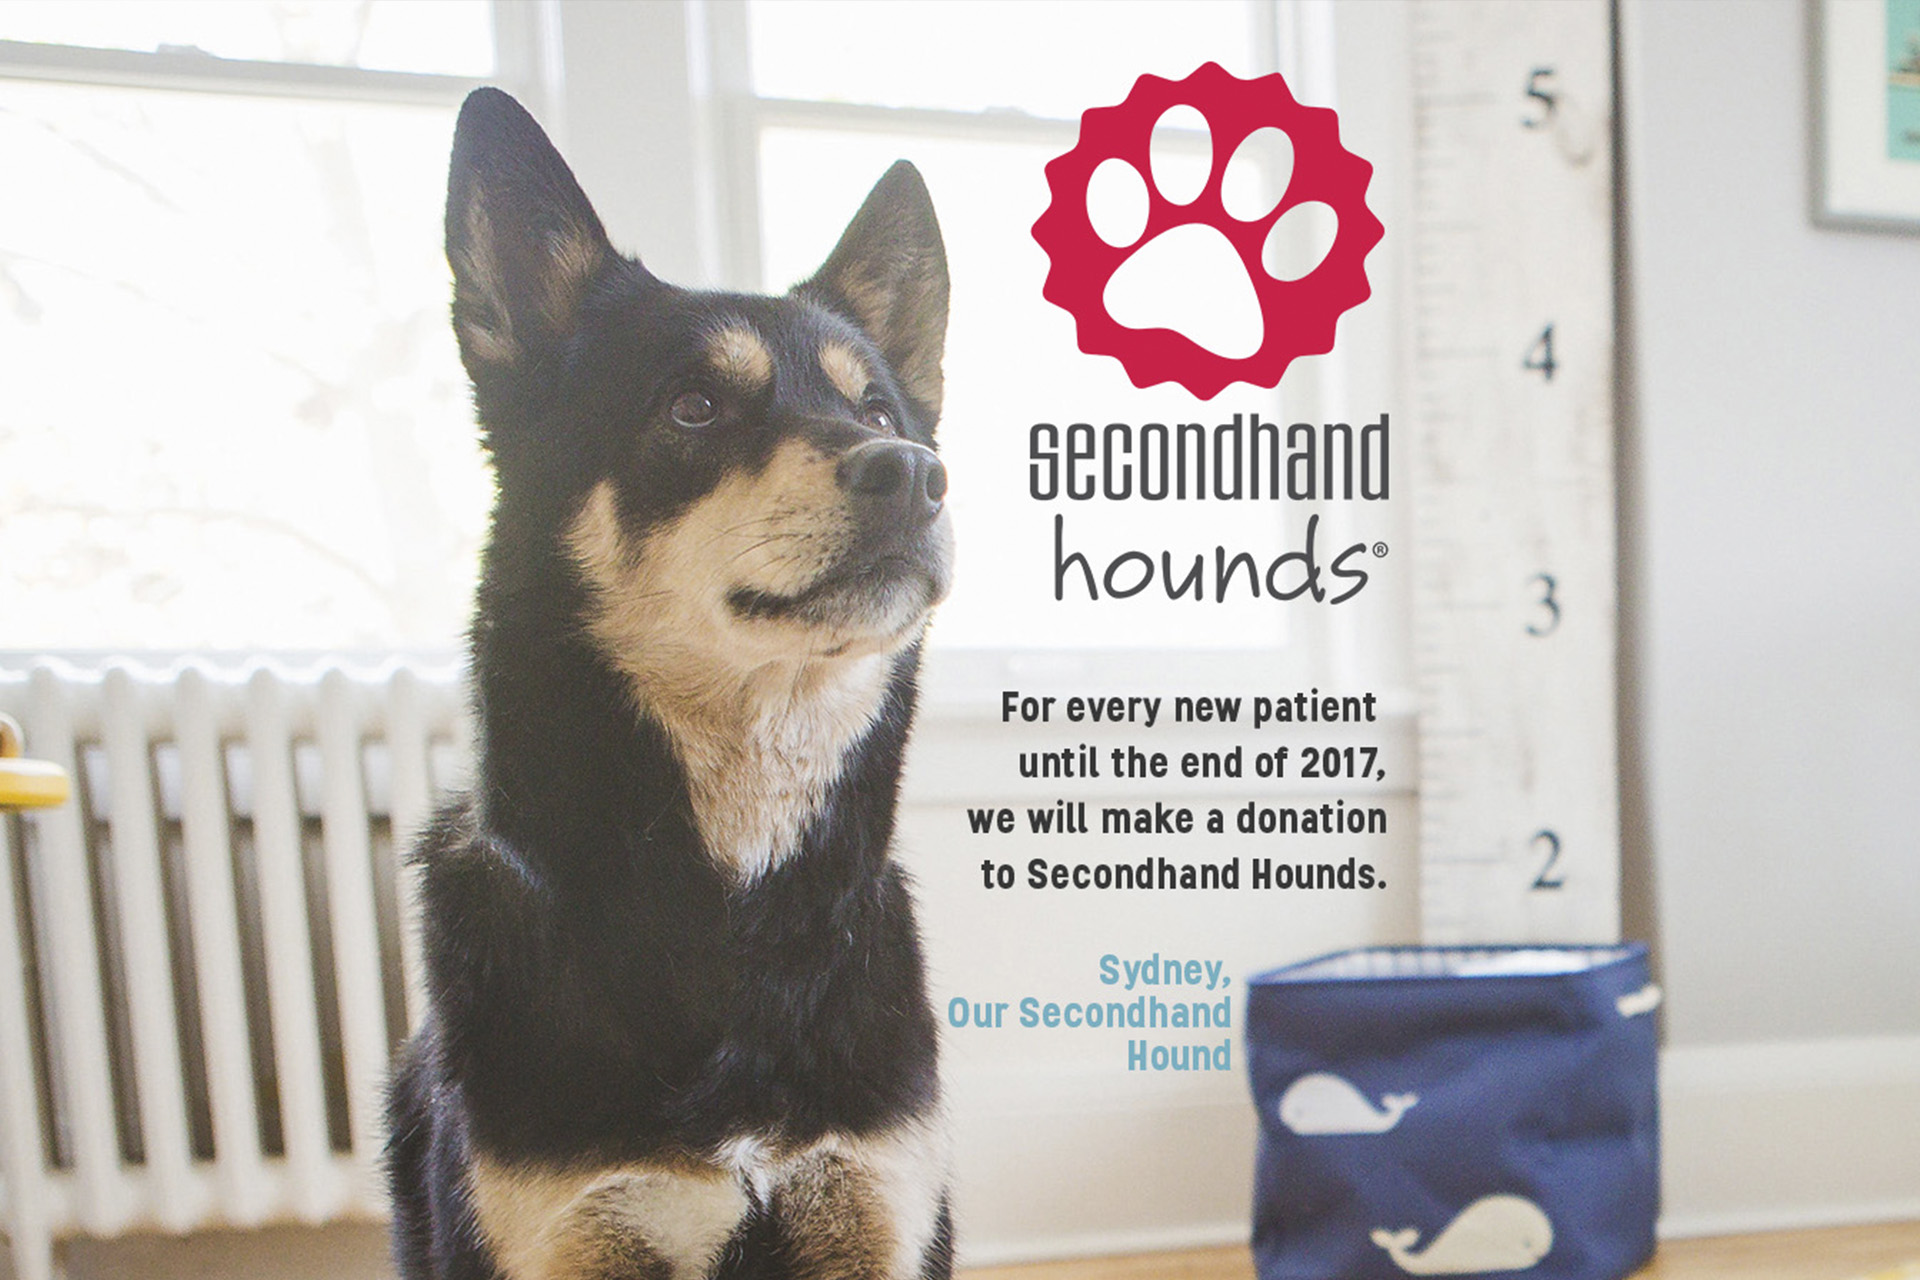 For every new patient until the end of the 2017, we will make a donation to Secondhand Hounds.